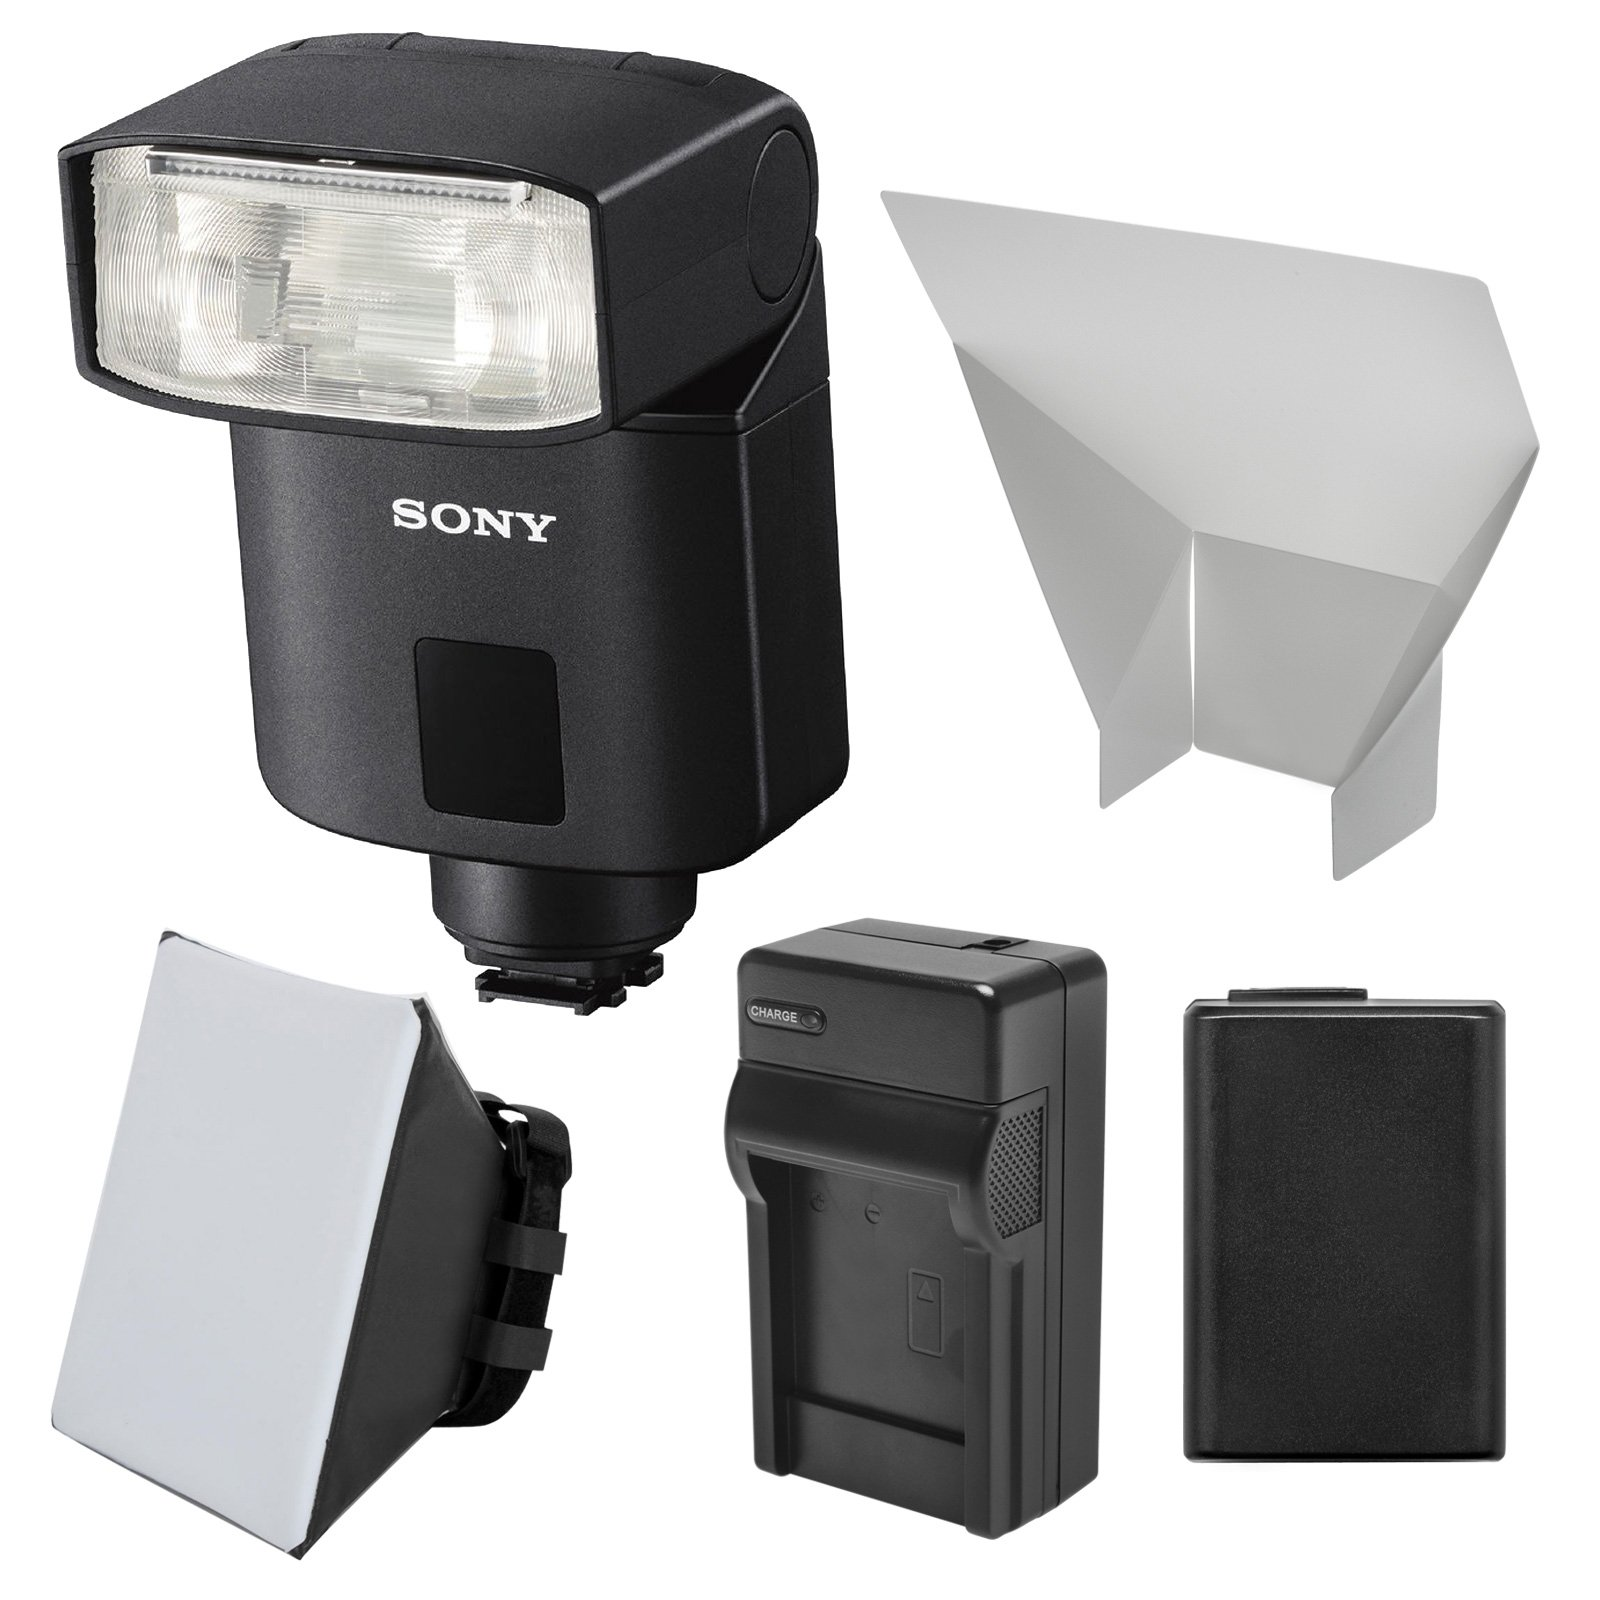 Sony Alpha HVL-F32M Flash with NP-FW50 Battery + Charger + Soft Box + Bounce Diffuser + Kit for Alpha A3000, A6000, A7, A7R, A7S & NEX-6 Cameras by Sony